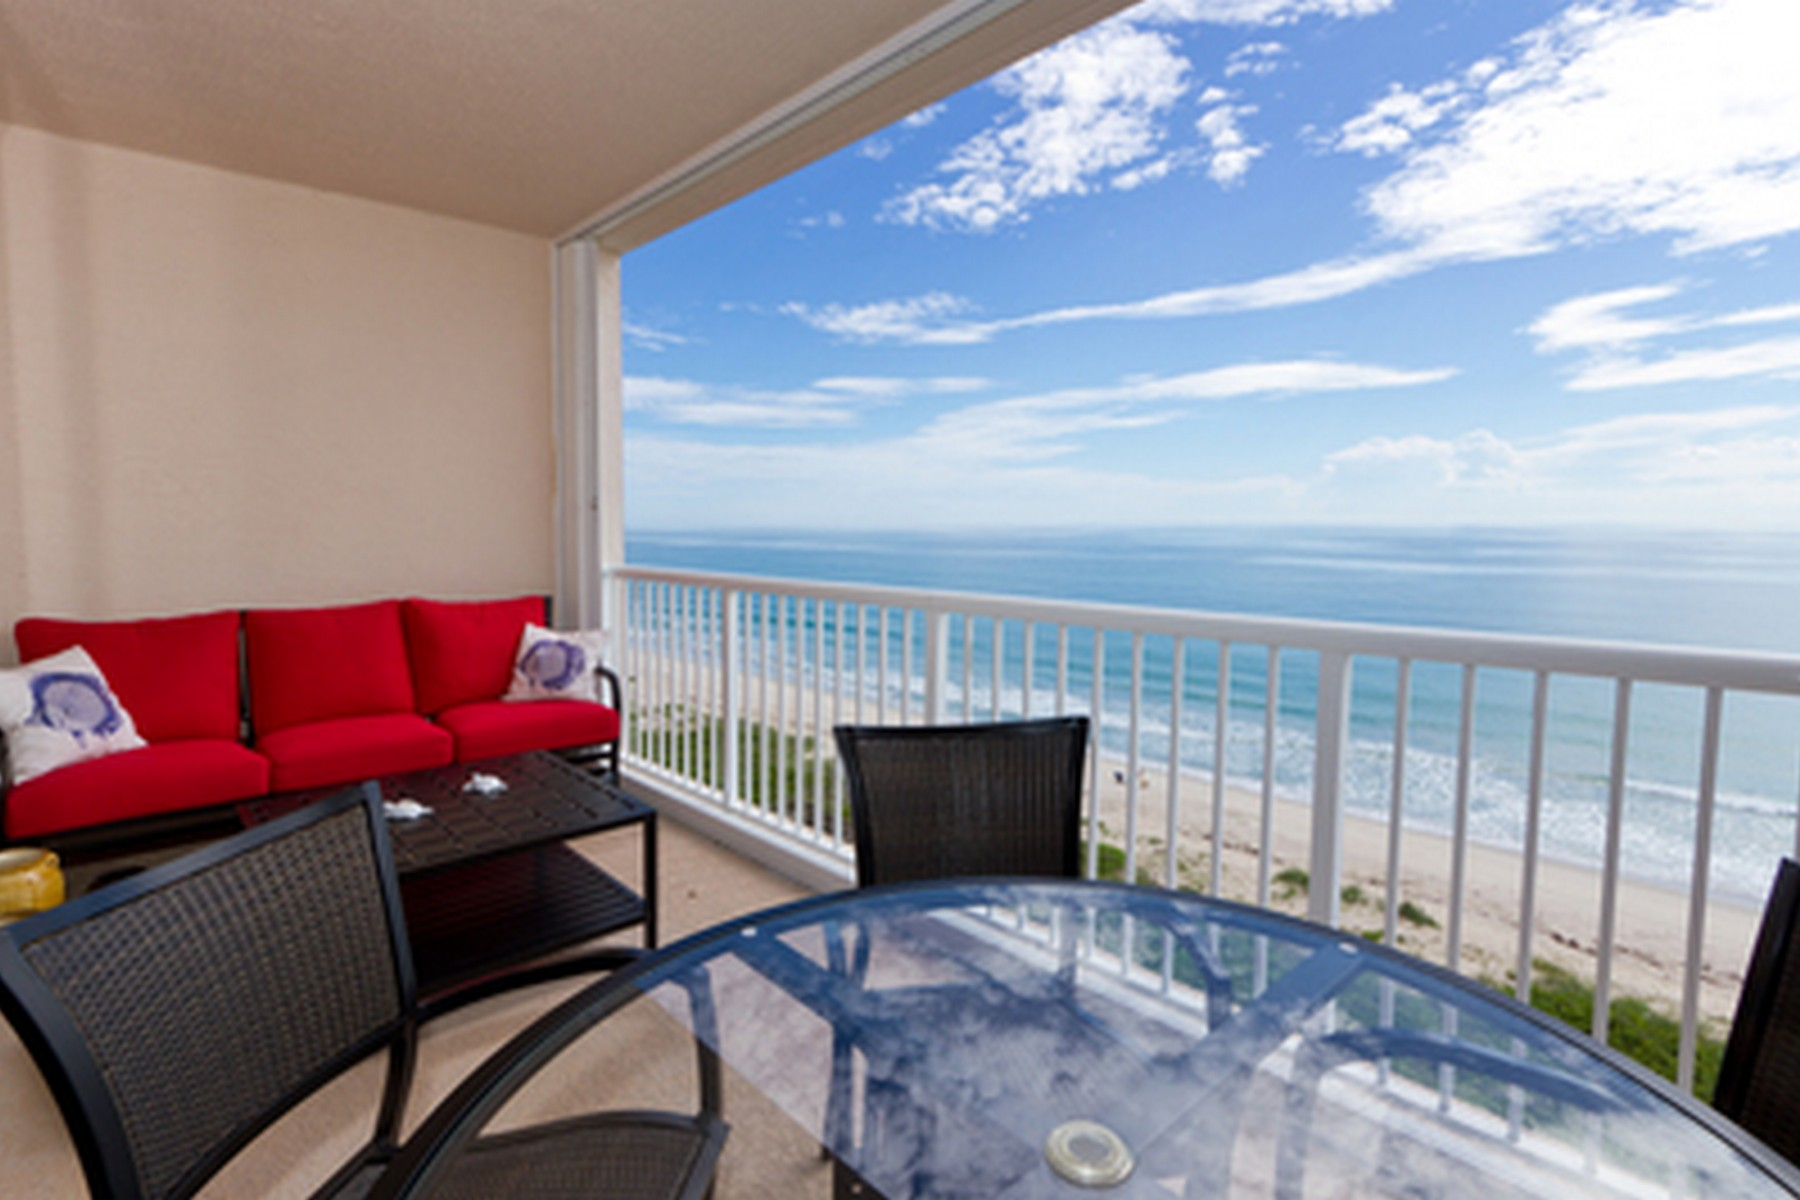 Condominiums for Sale at The Sky Touches the Sea of this Ninth Floor Oceanfront Condo! 4160 N Highway A1A #903A, Hutchinson Island, Florida 34949 United States